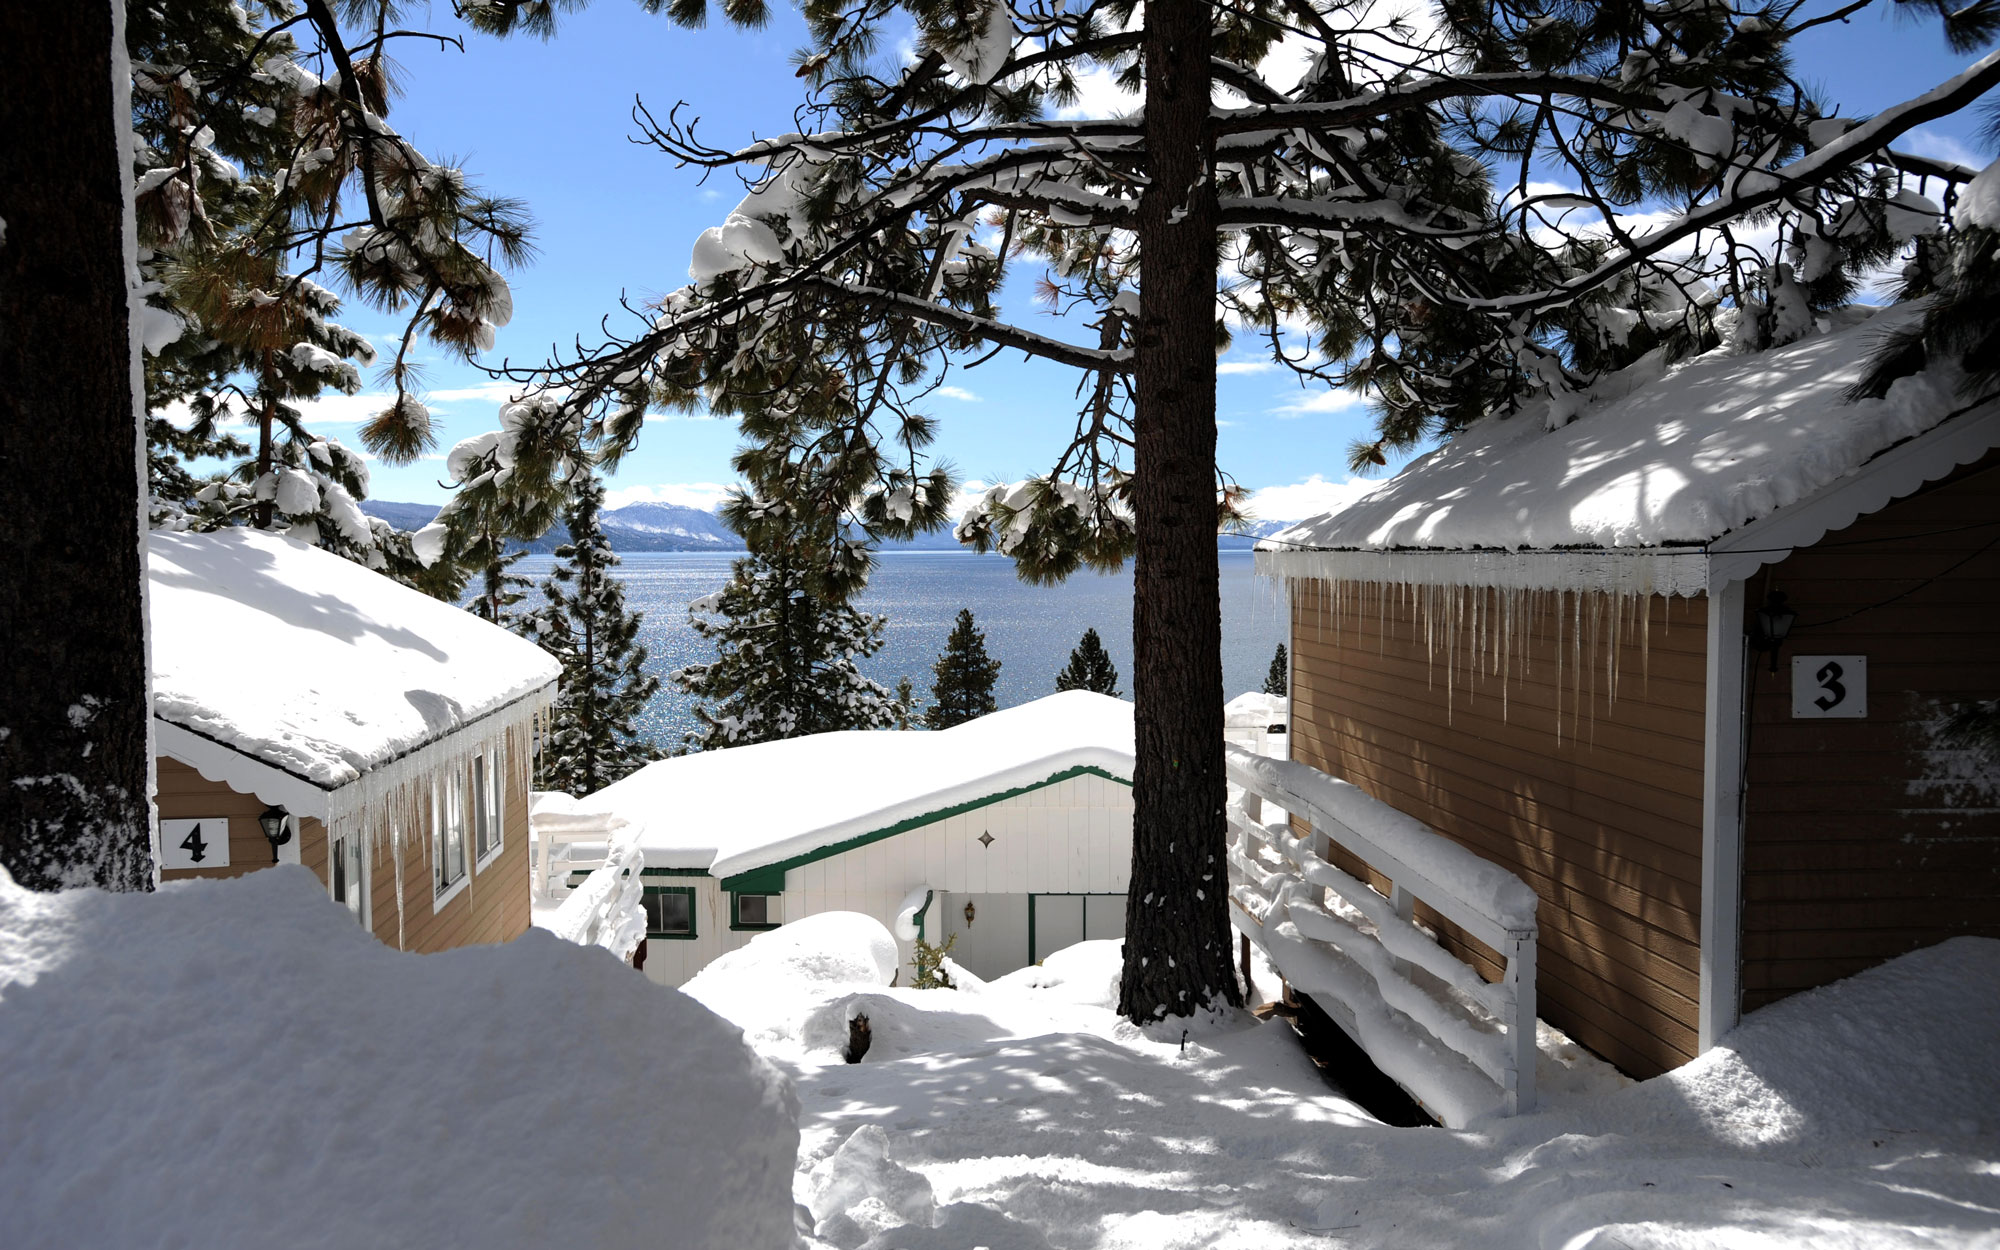 Hotels Haunted by Celebrities: CalNeva Resort, Spa & Casino in Lake Tahoe, Nevada